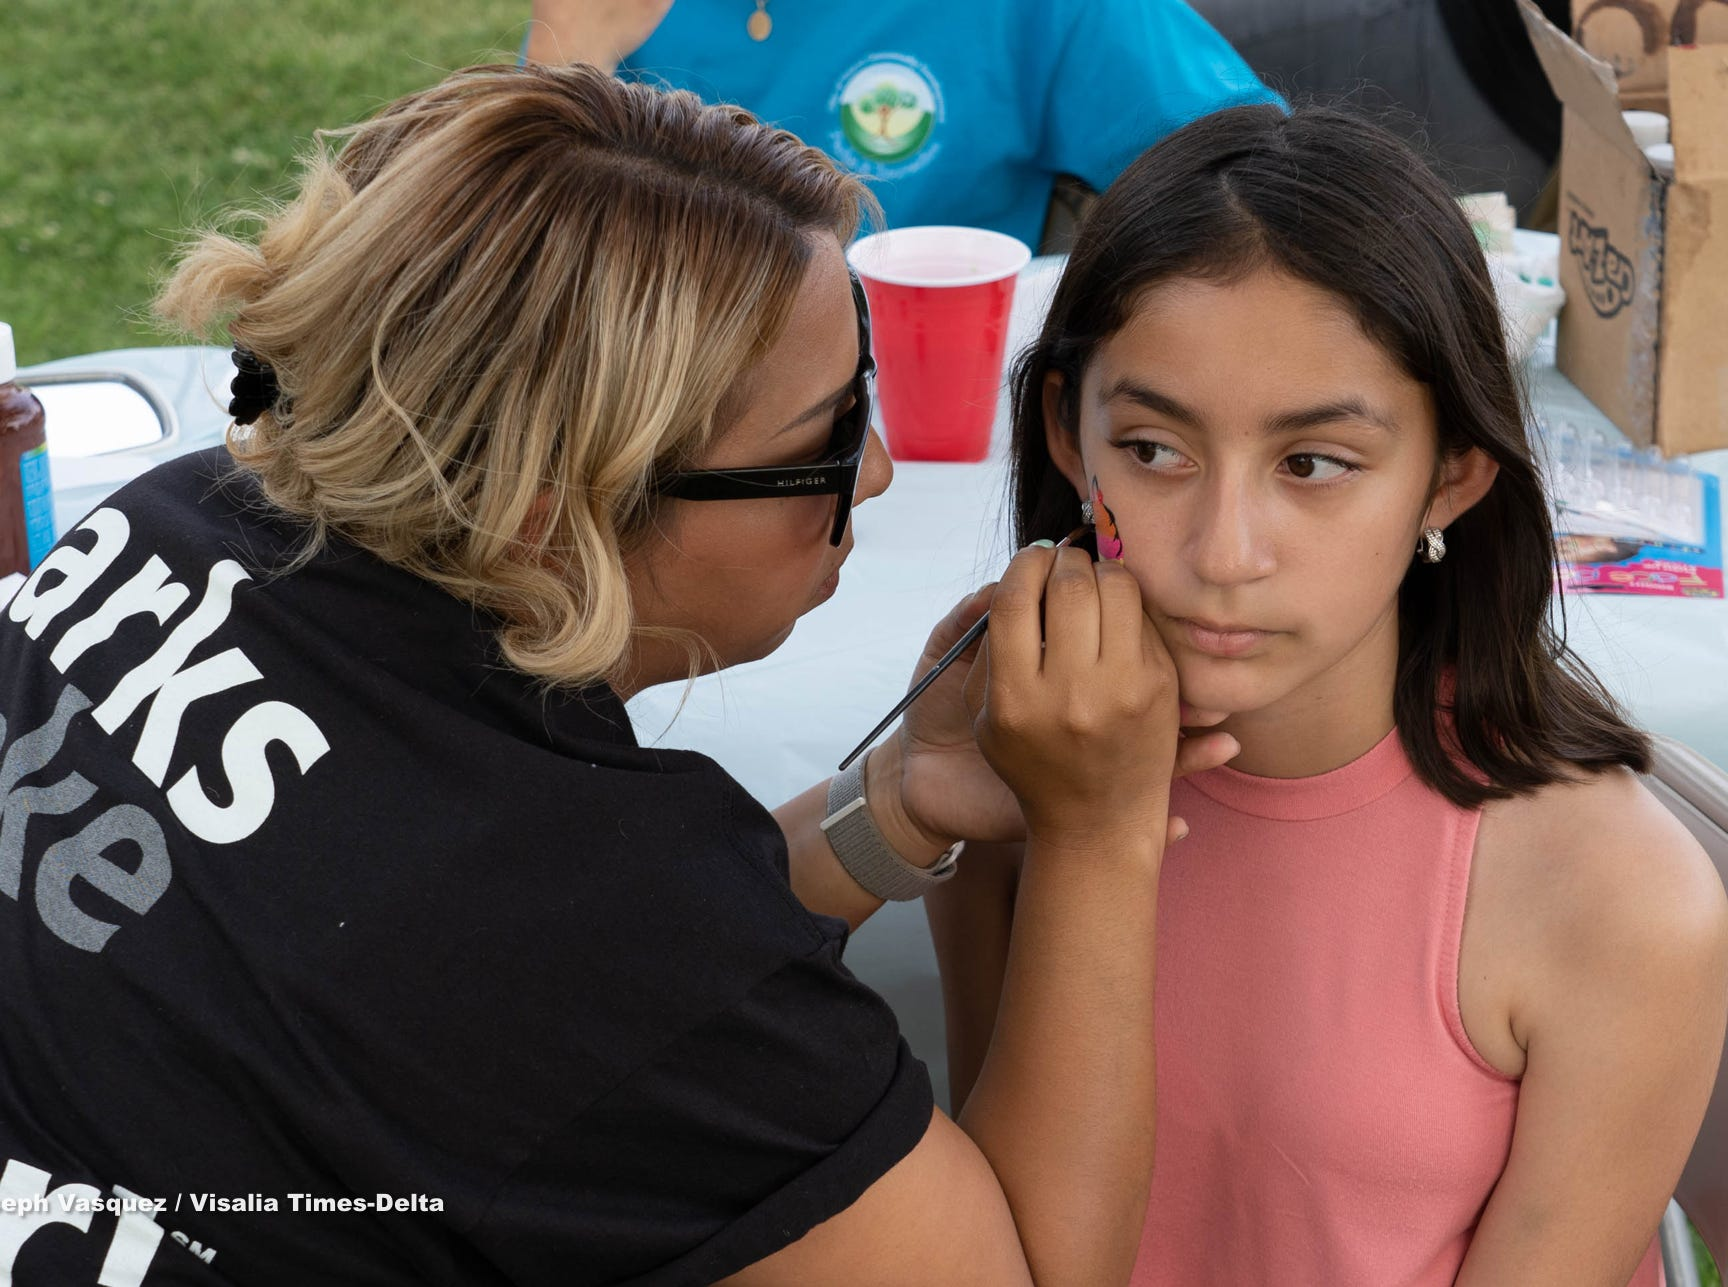 Annual Spring Carnival and Eggstravaganza was held at Zumwalt Park Thursday night with many in attendance enjoying food crafts and bounce houses. Kids of three different age groups also participated in a egg hunt in the park.